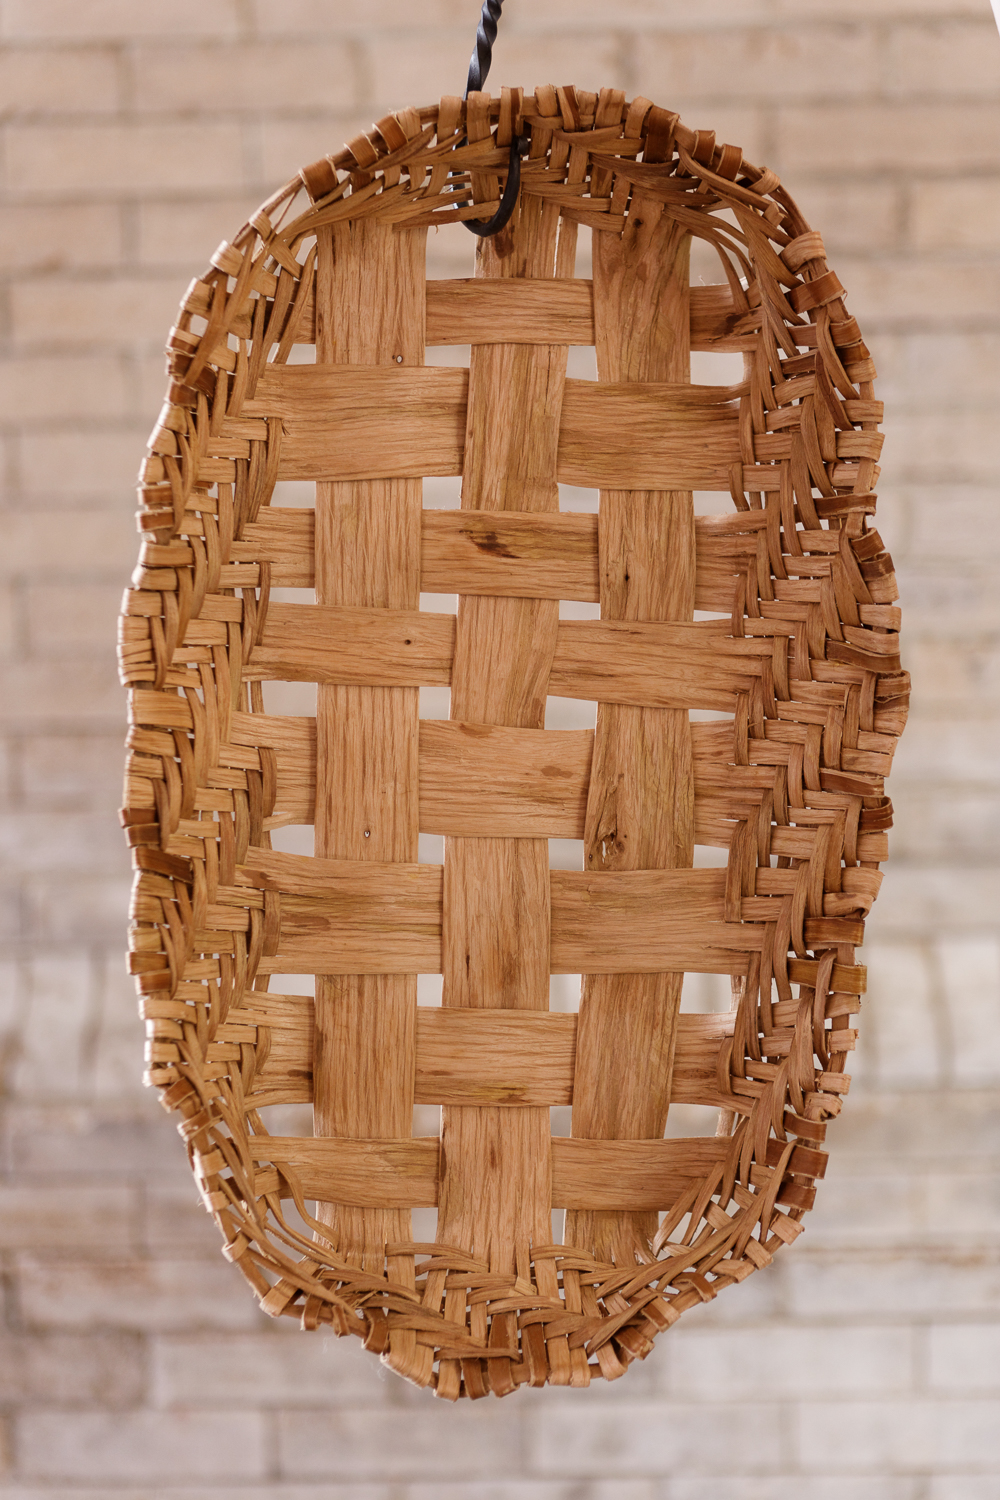 Hand-Split Baskets